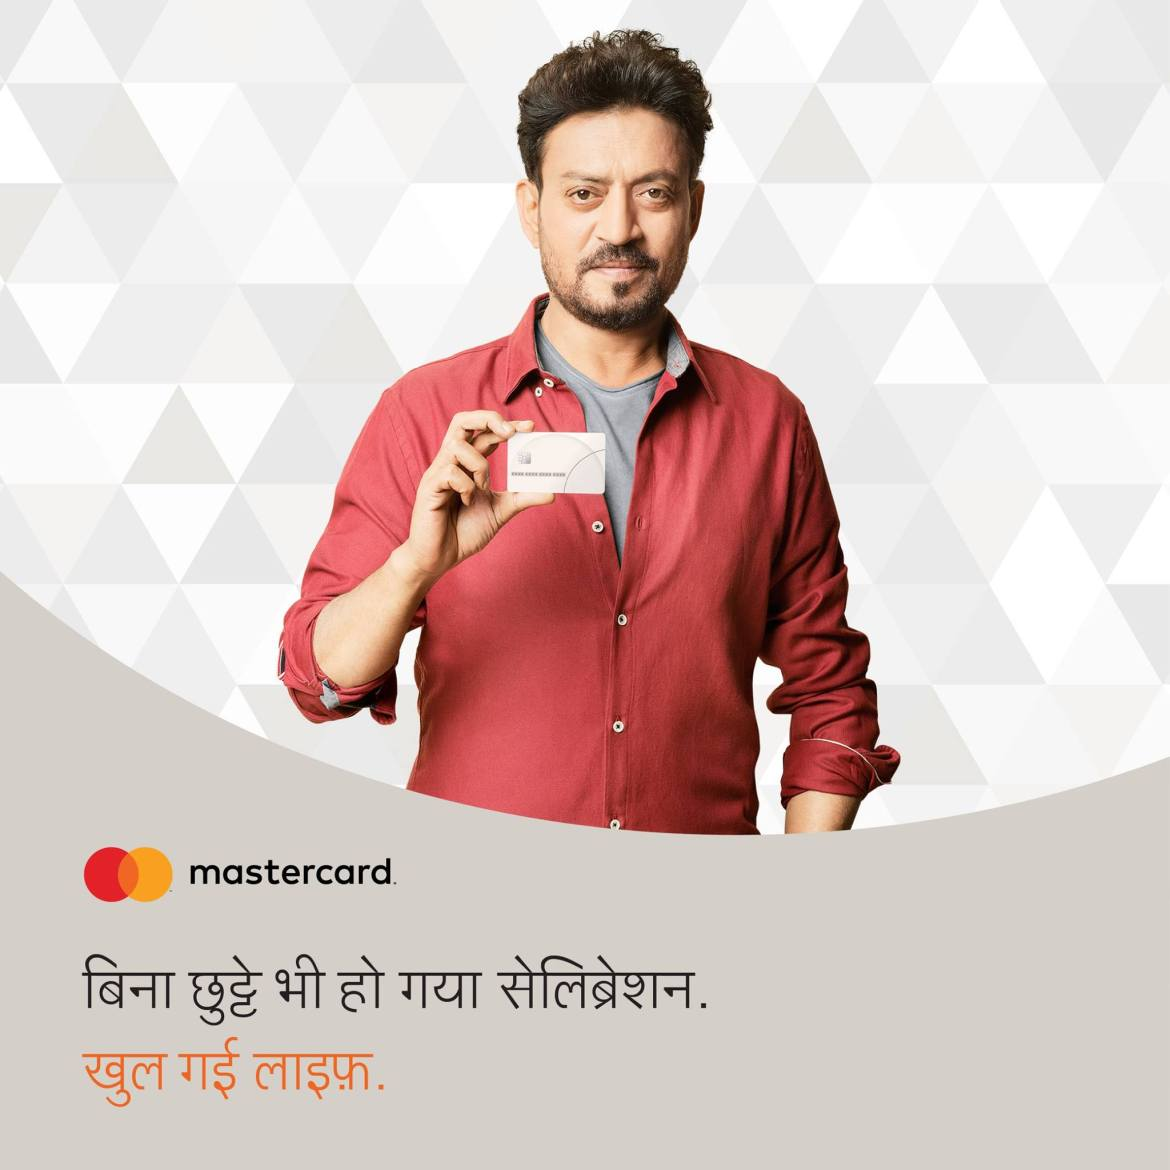 Irrfan Khan Brand Endorsements Brand Ambassadors TVCs advertisements promotion MasterCard